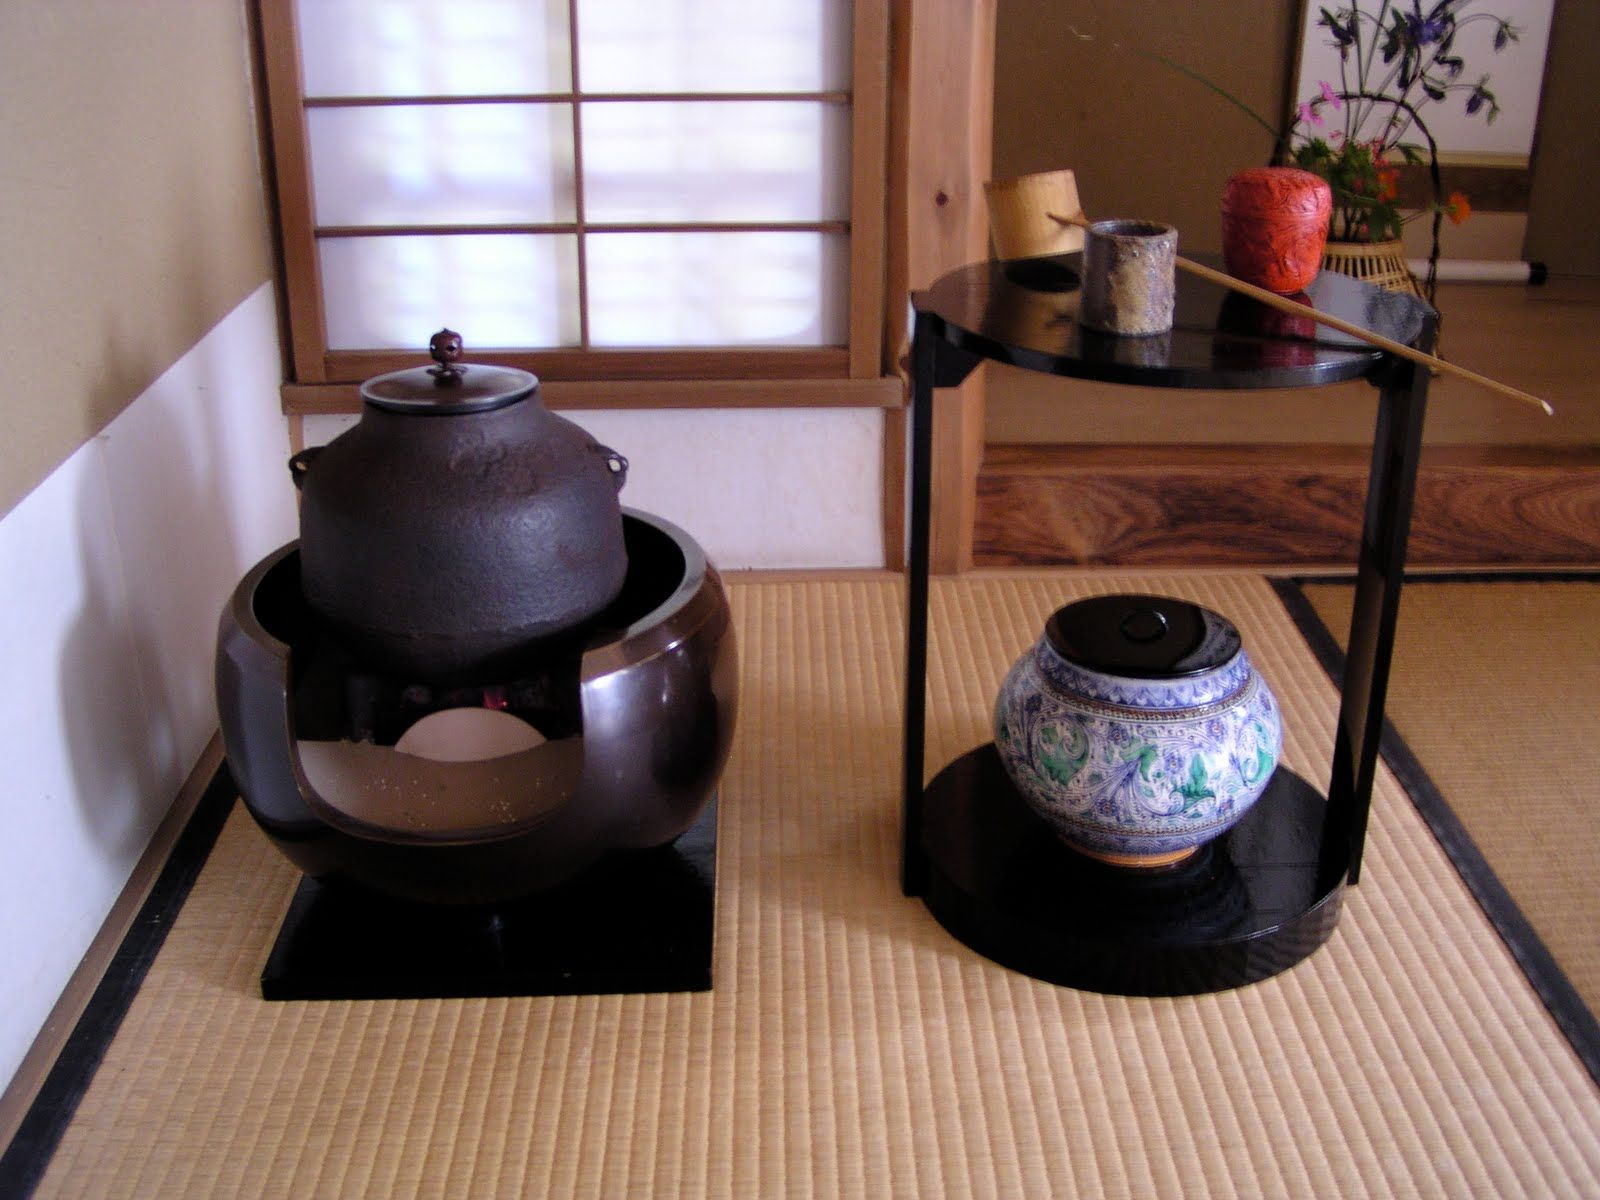 Japanese tea ceremony set up